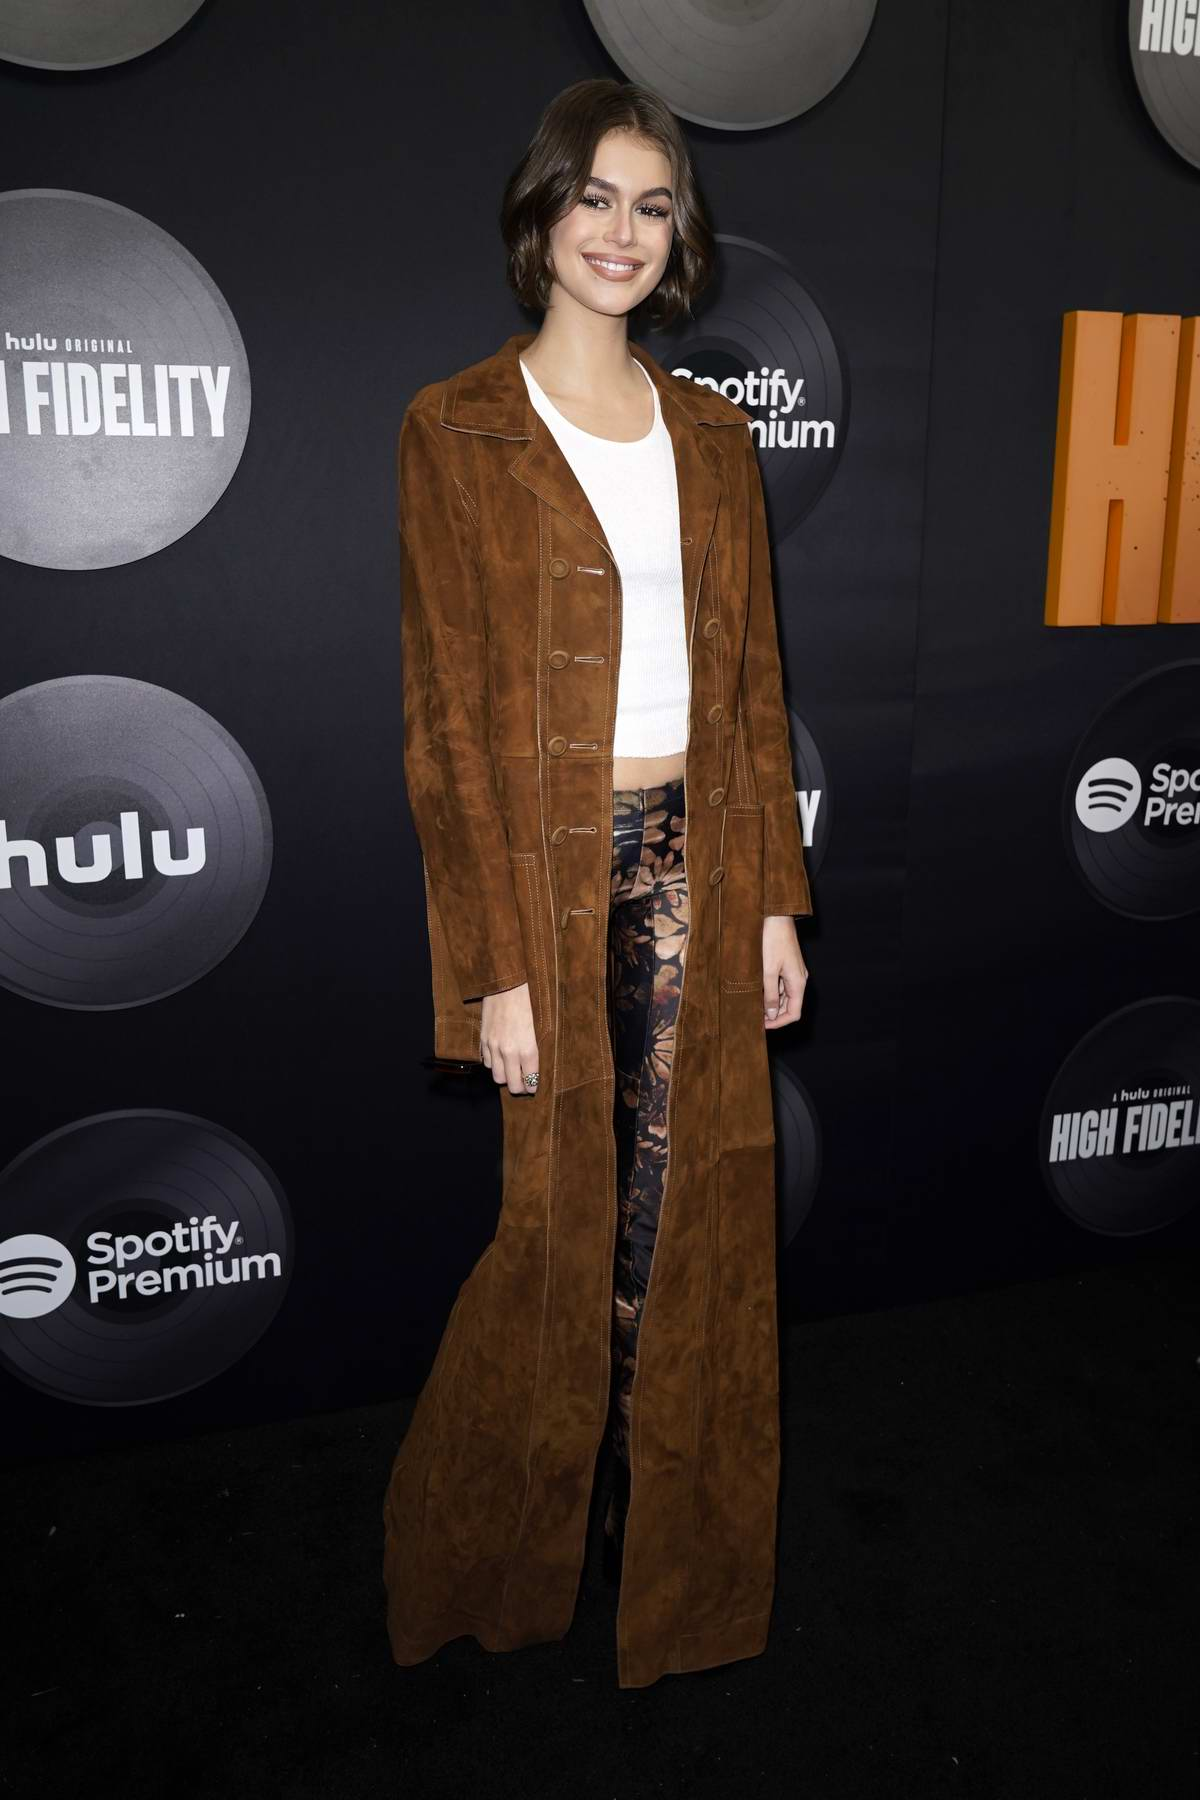 Kaia Gerber attends the Premiere of Hulu's New Dramedy Series 'High Fidelity' in New York City